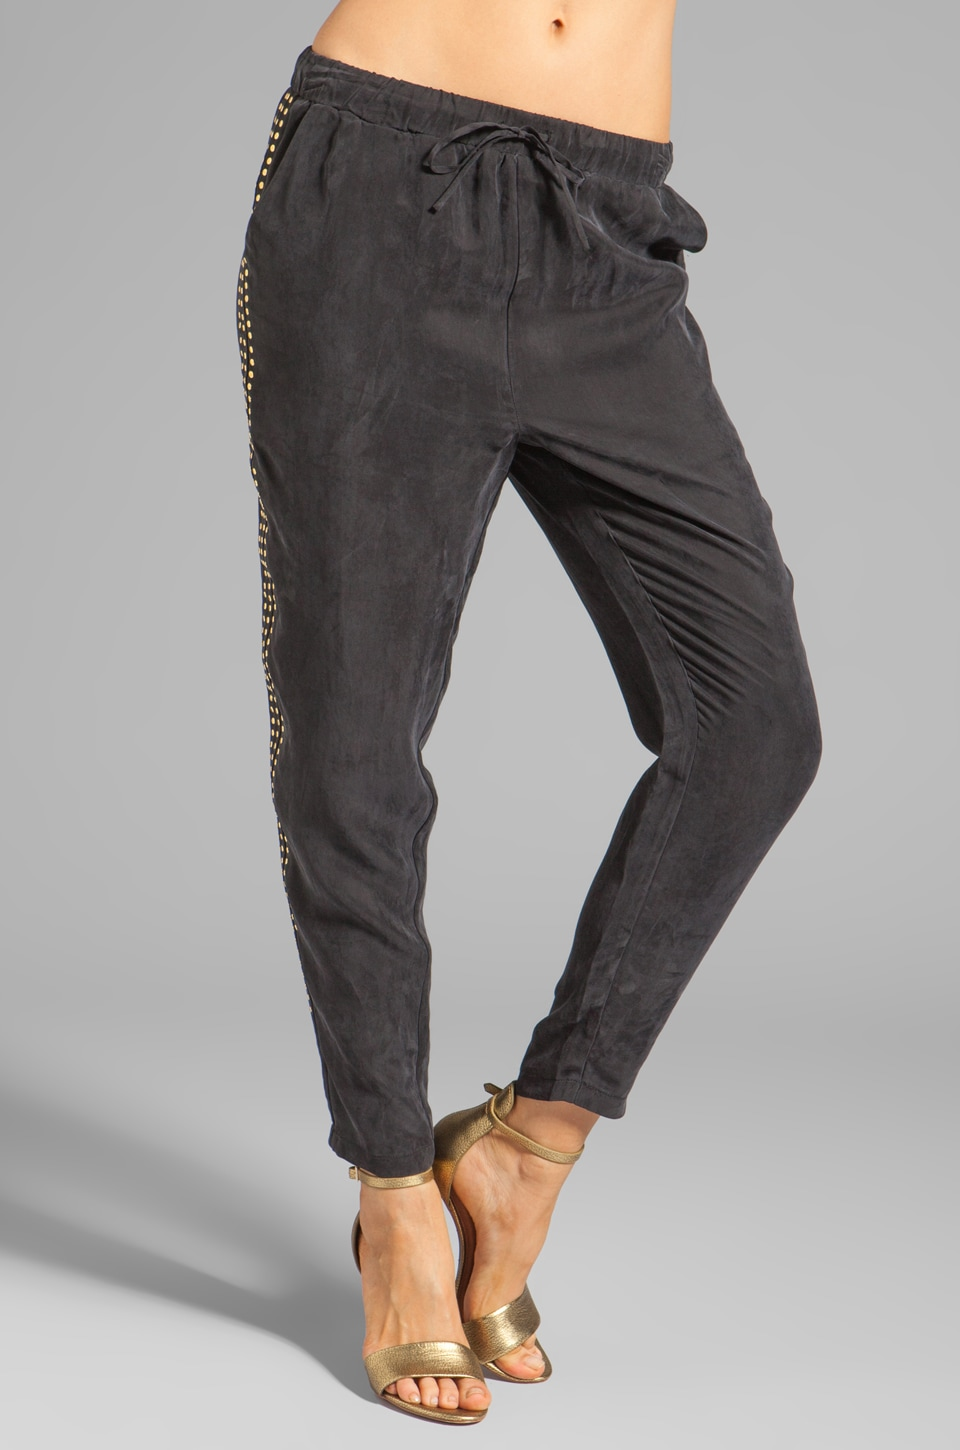 Lovers + Friends Bright Eyes Pant in Black w/ Studs